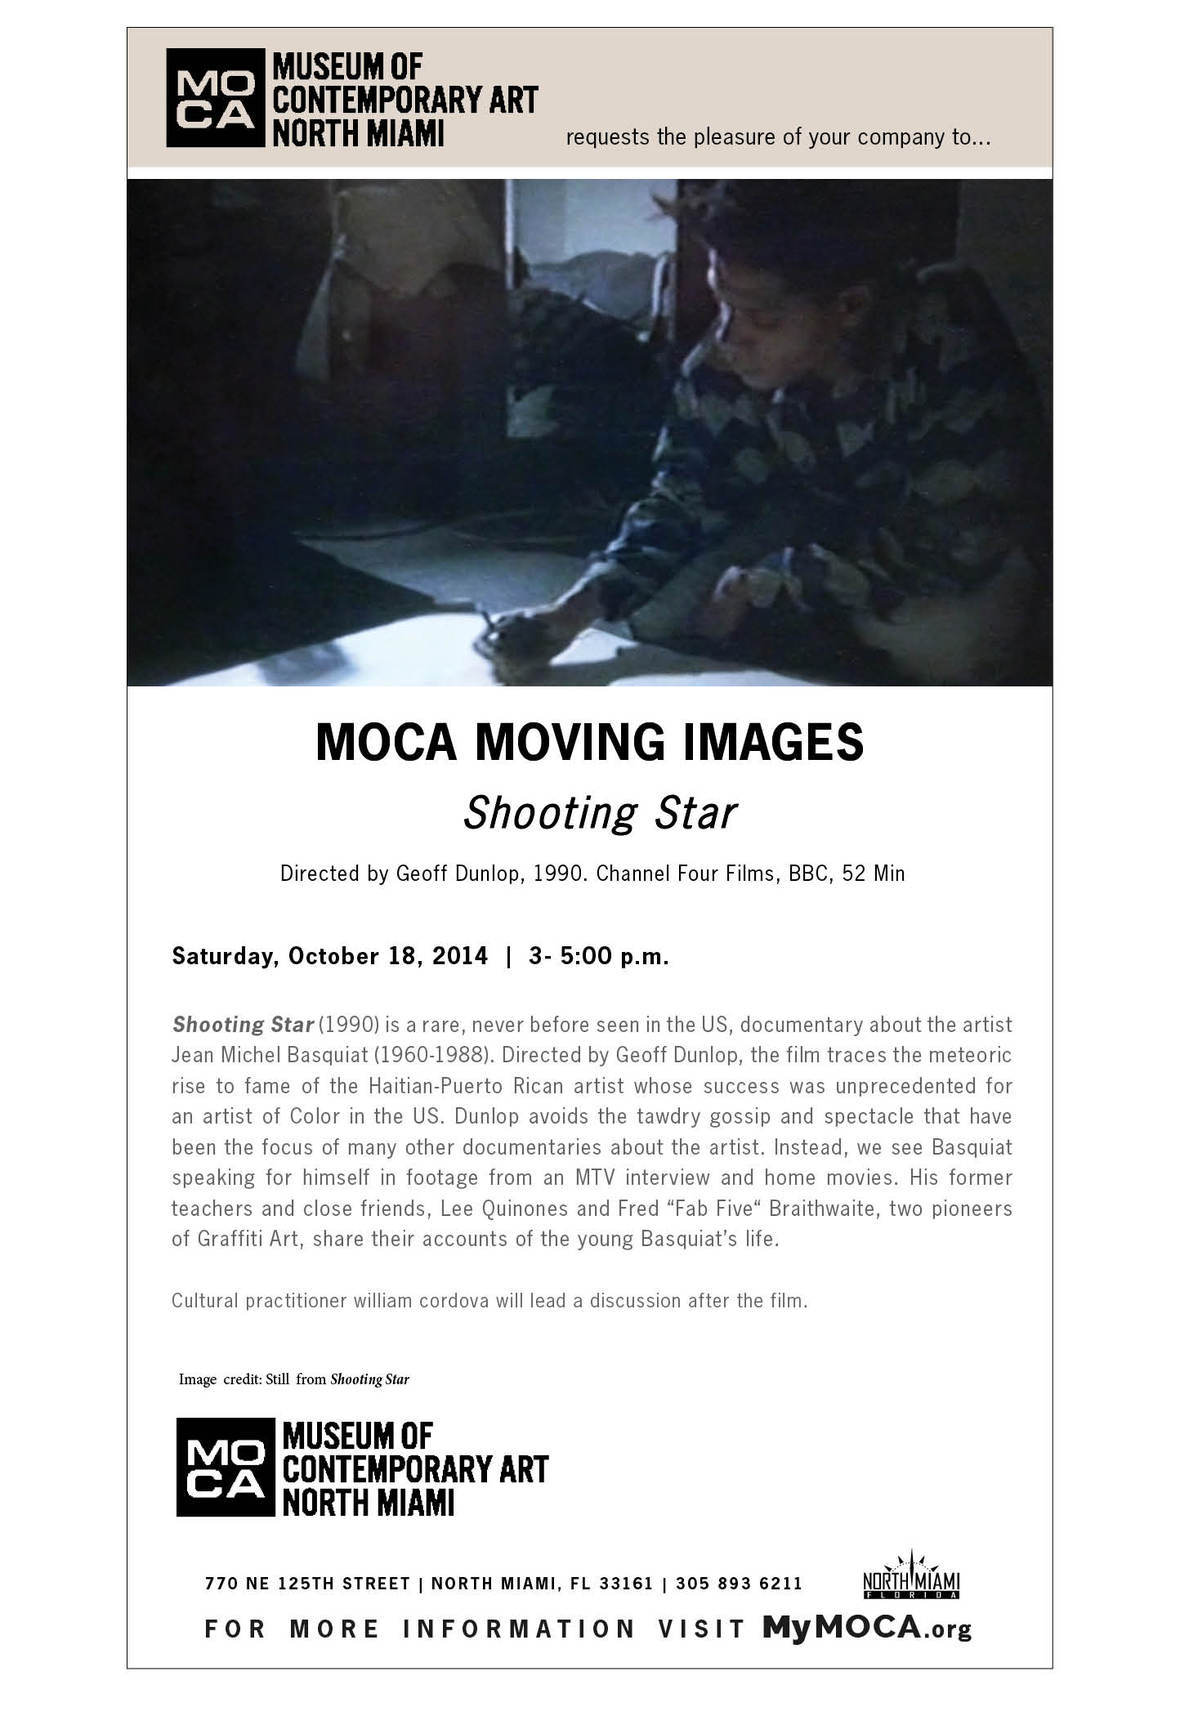 14 FINAL movingimages eblast